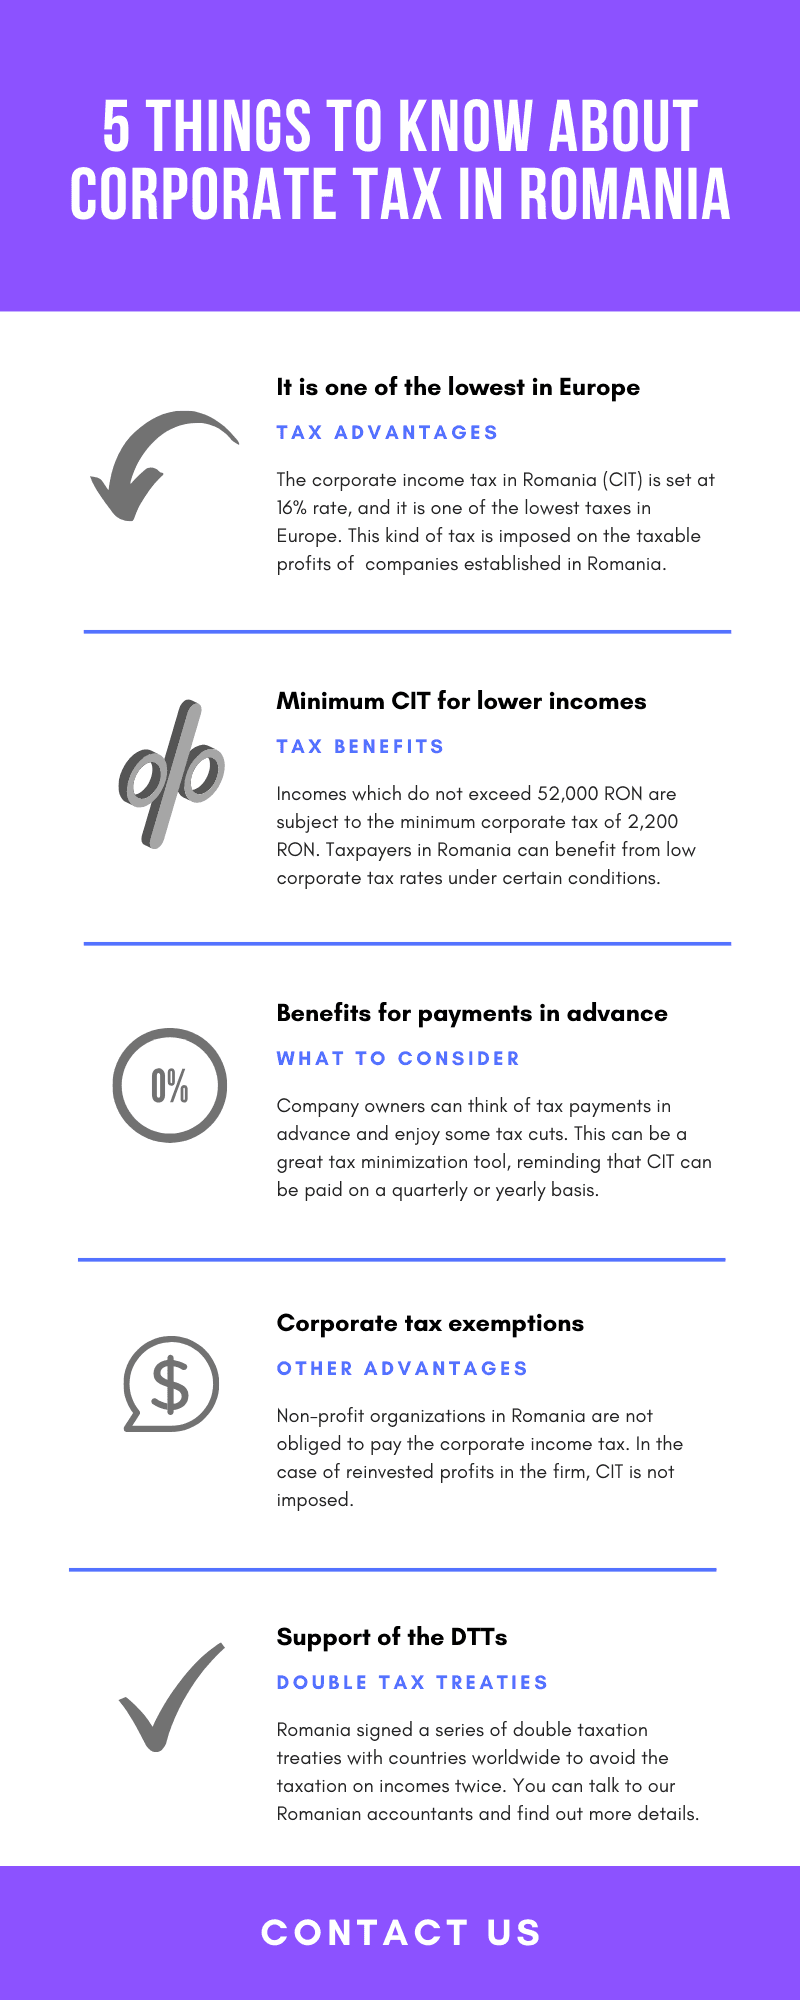 5 things to know about corporate tax in Romania1.png